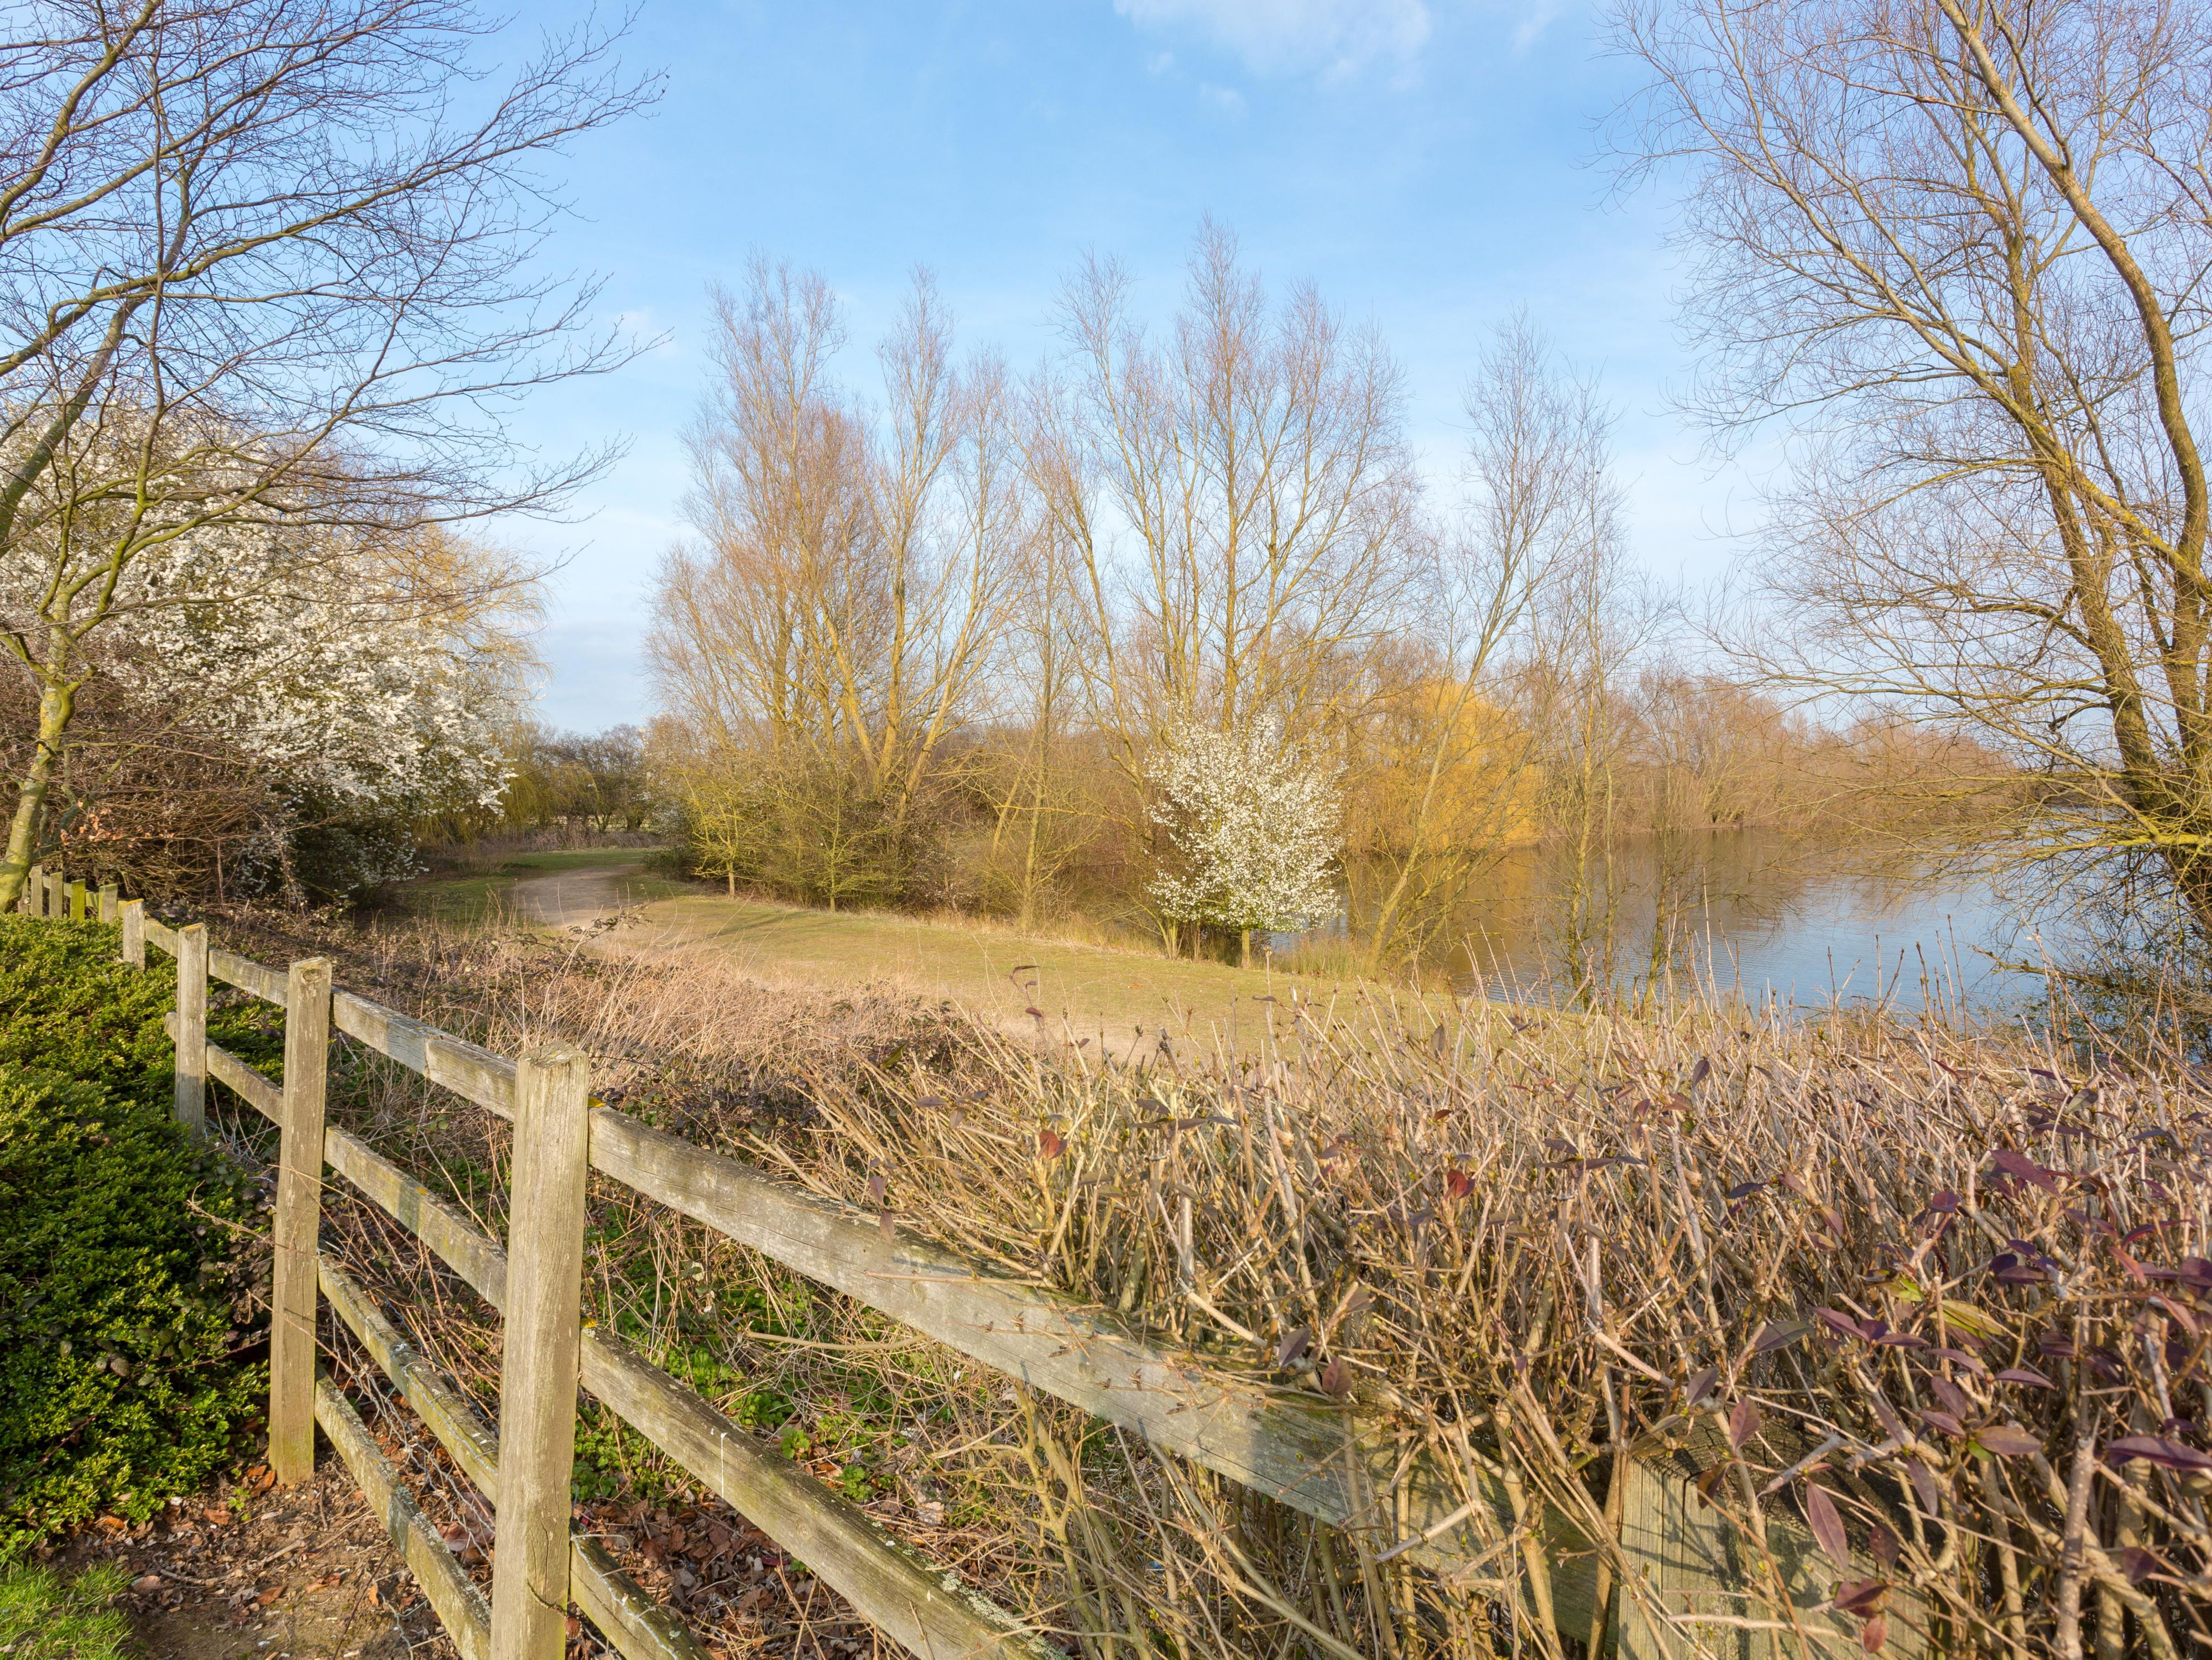 Take a stroll to the nearby Chivers Lake